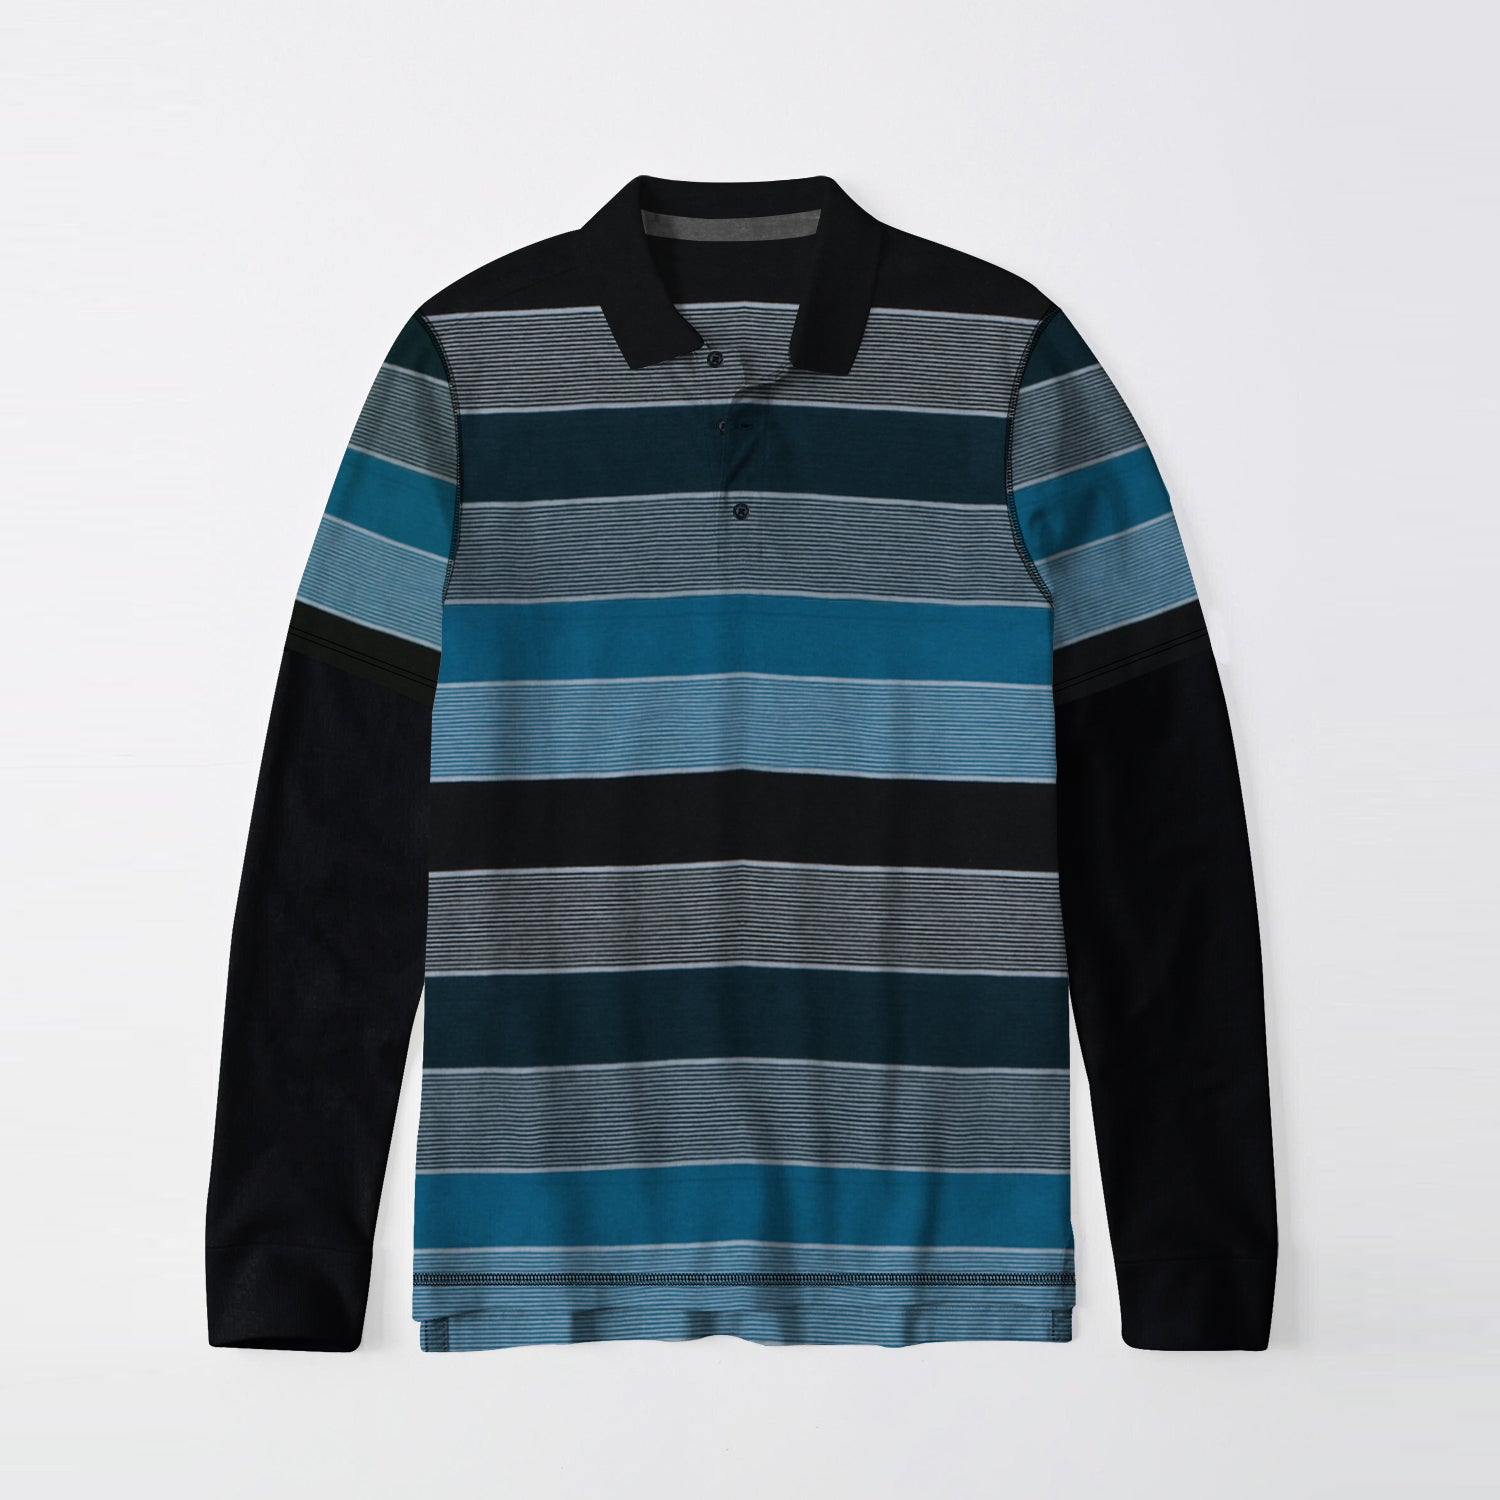 Next Single Jersey Long Sleeve Polo Shirt For Men-Striped-BE9398